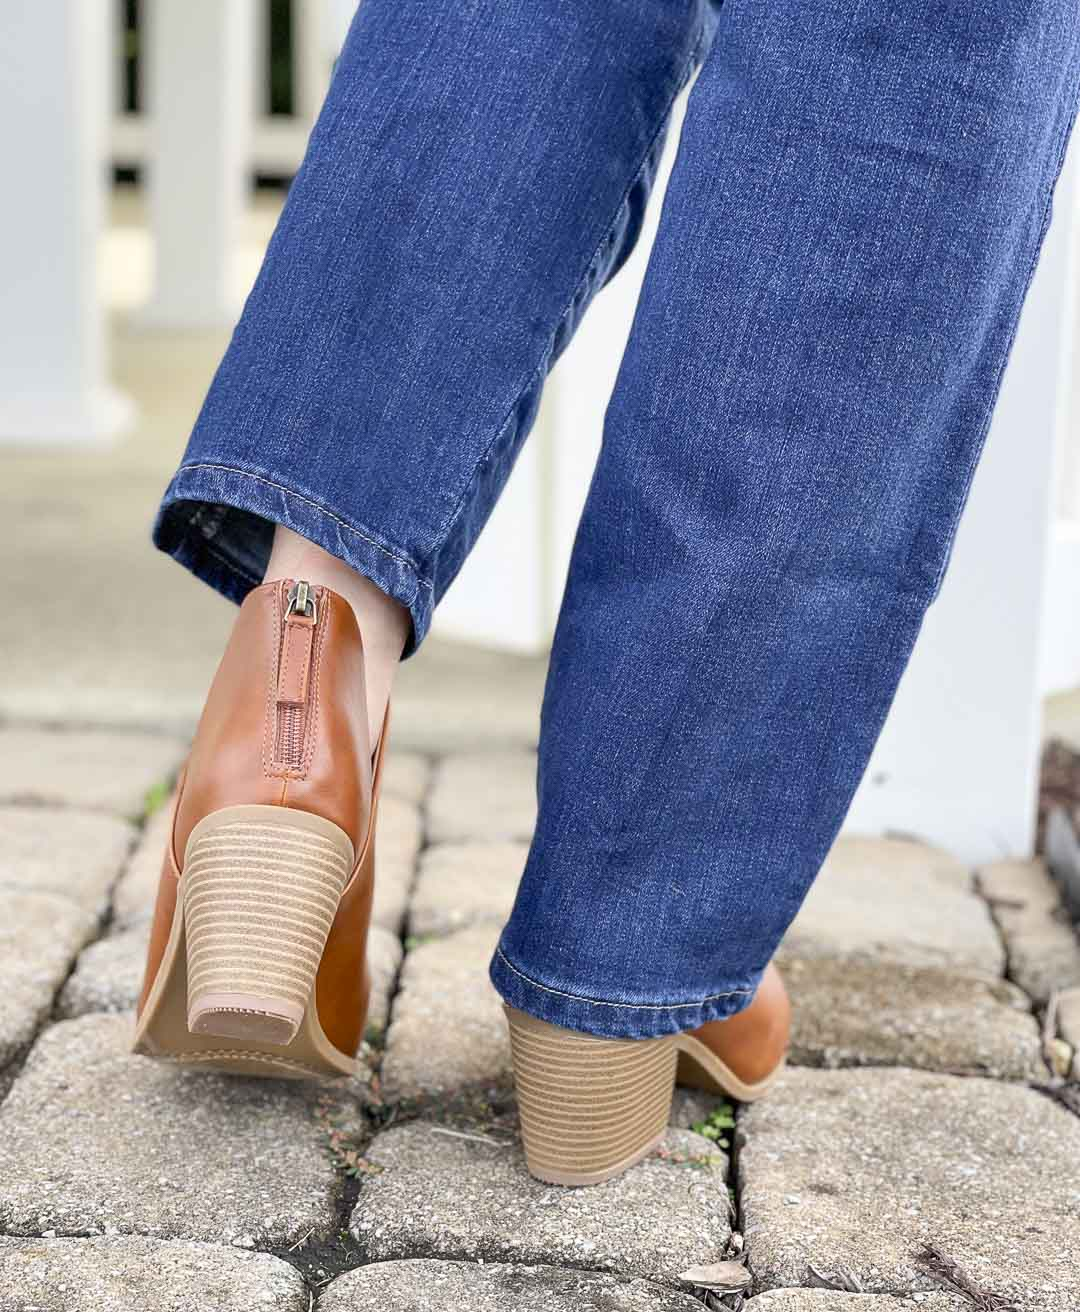 Over 40 Fashion Blogger, Tania Stephens, is showing her recent Walmart haul including these bootcut jeans and faux leather ankle boots